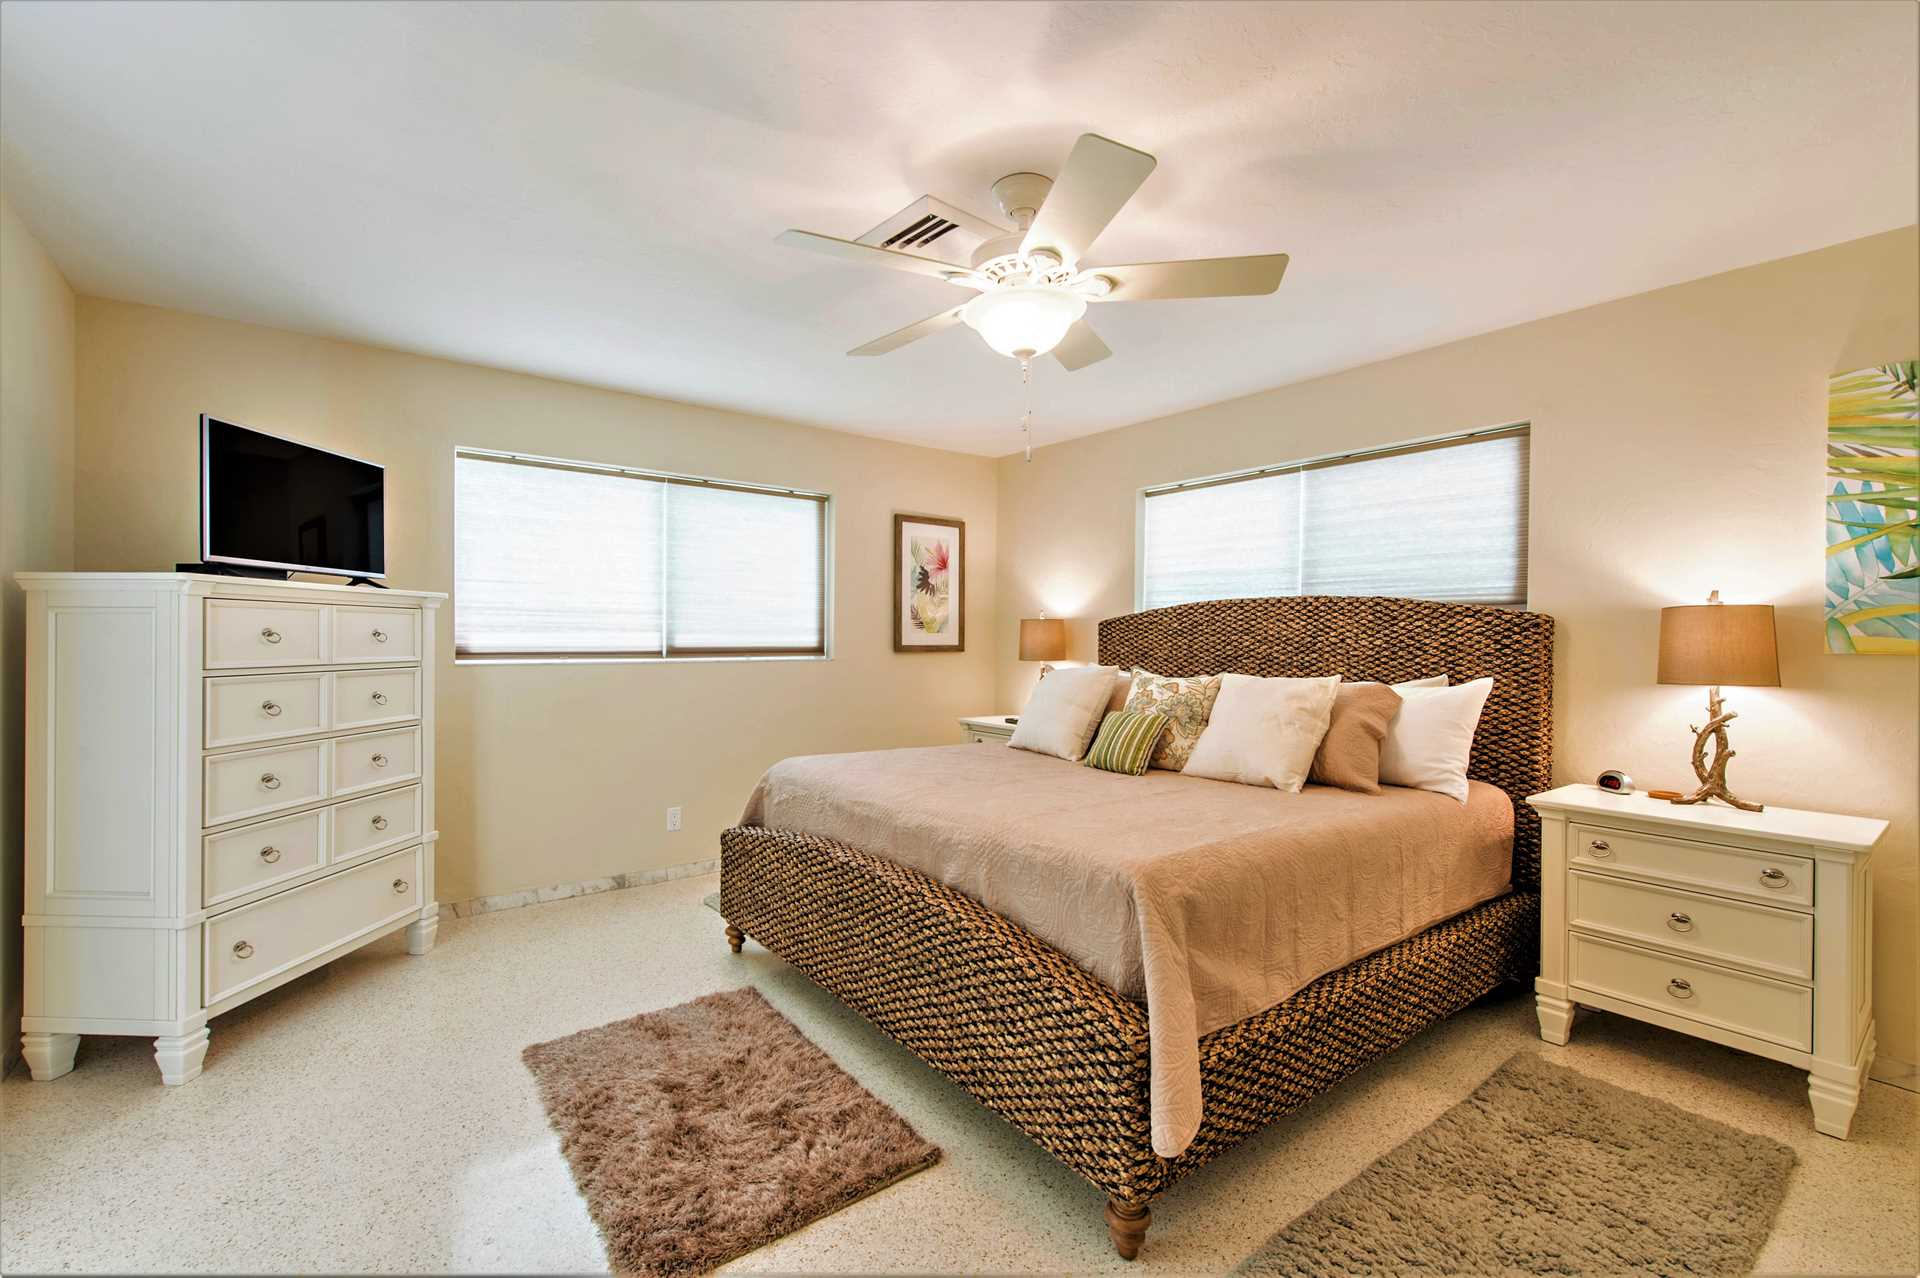 Master bedroom has king bed and ensuite cabana bath.